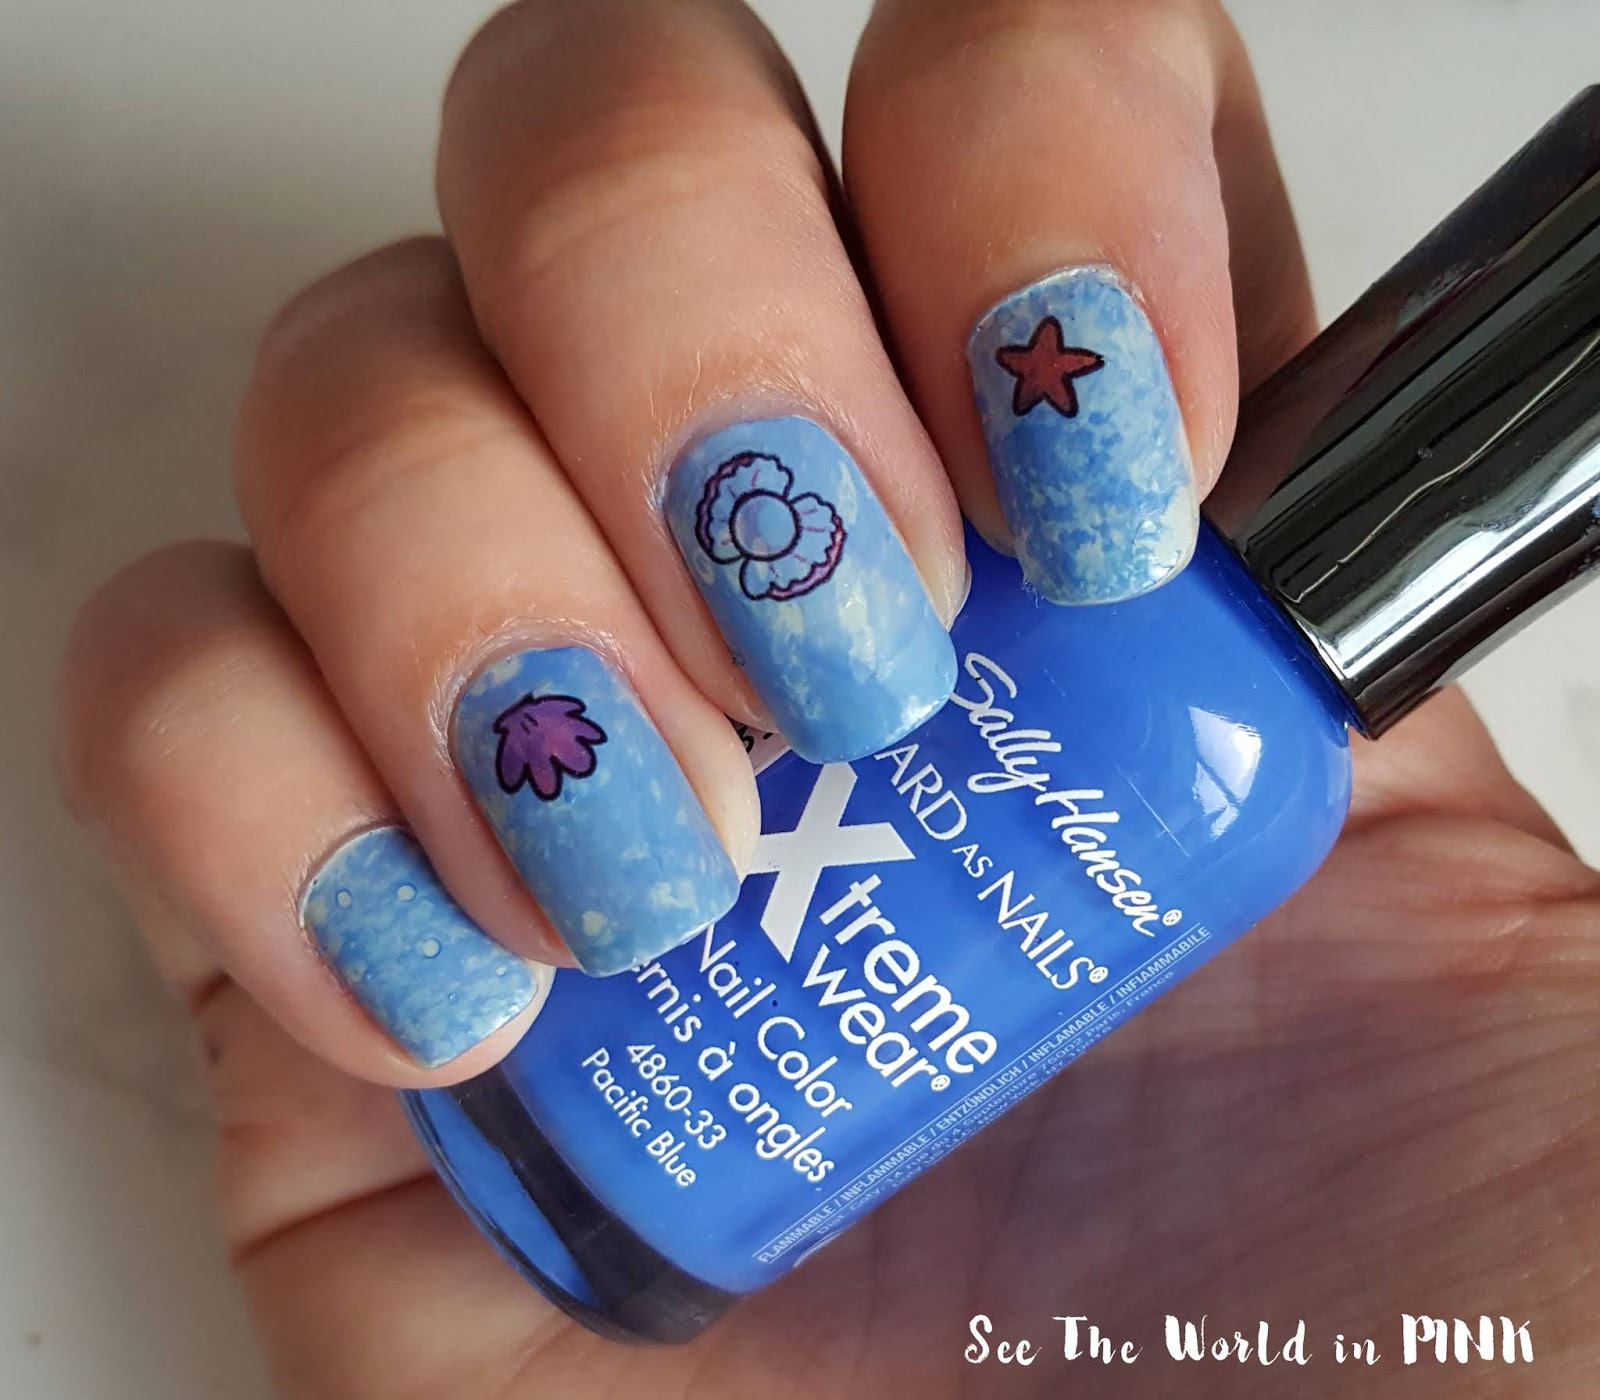 Manicure Monday - Water Spotted Nails (Water Marble Technique With Alcohol)